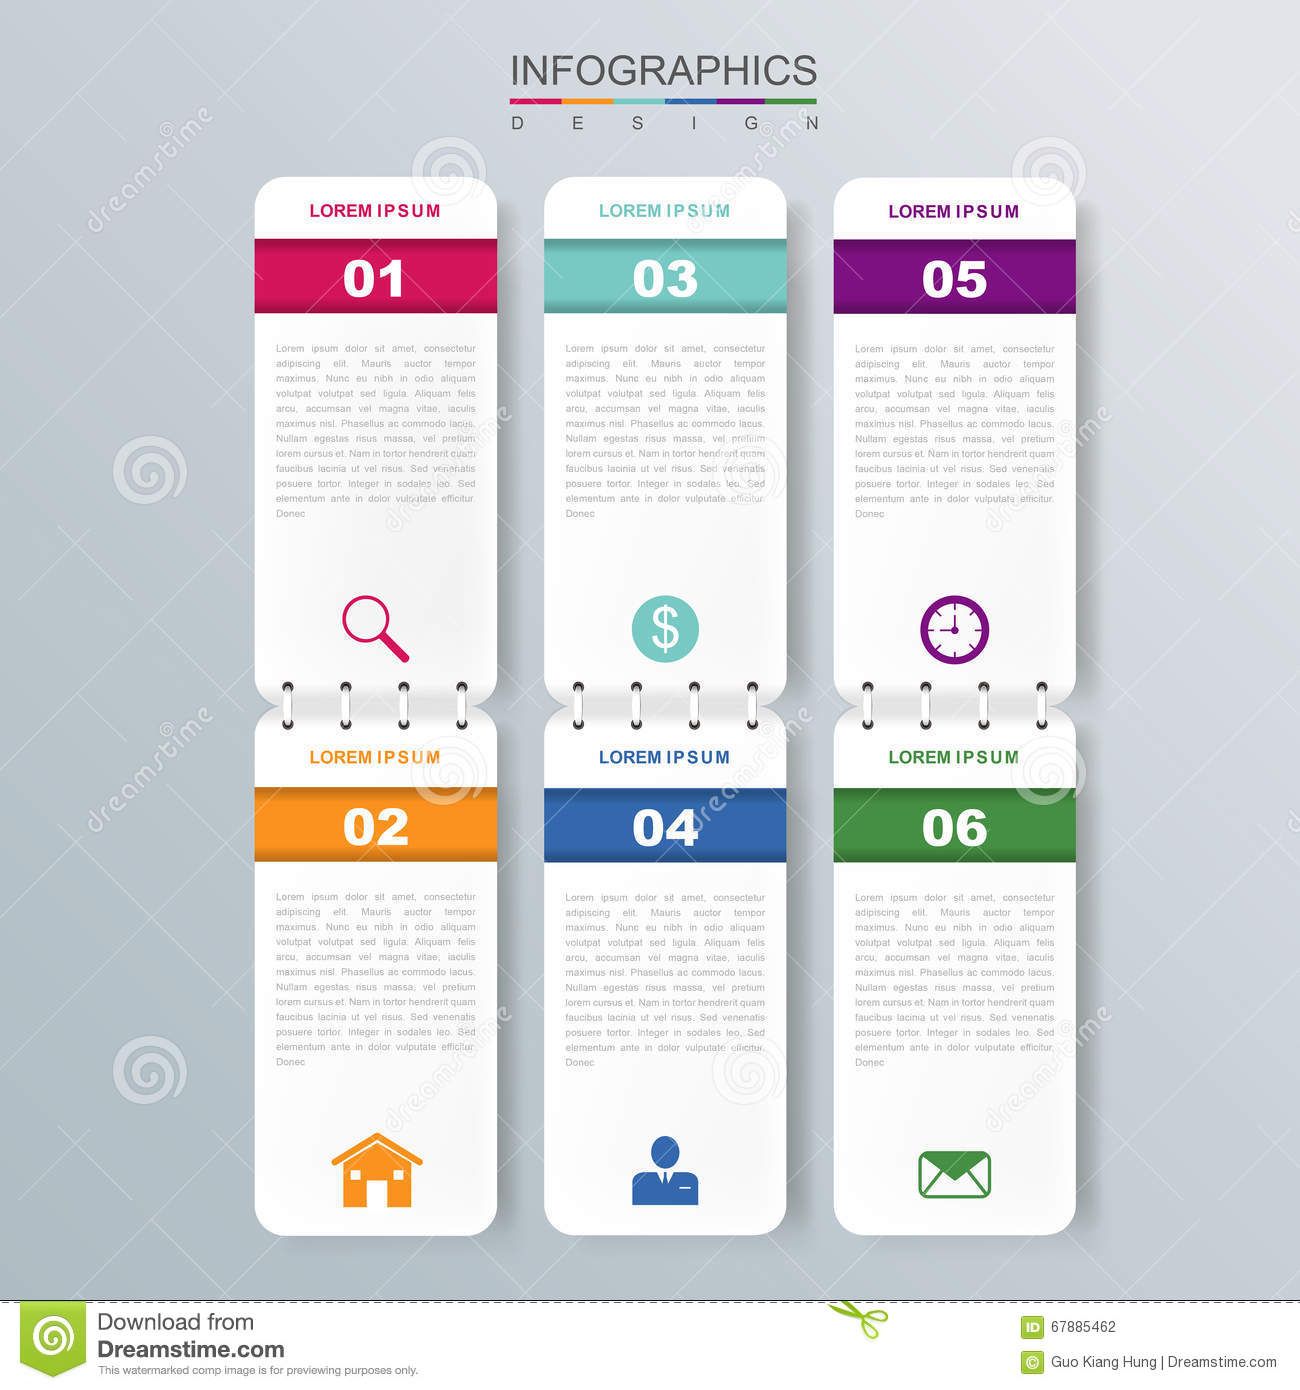 Diseño infographic moderno